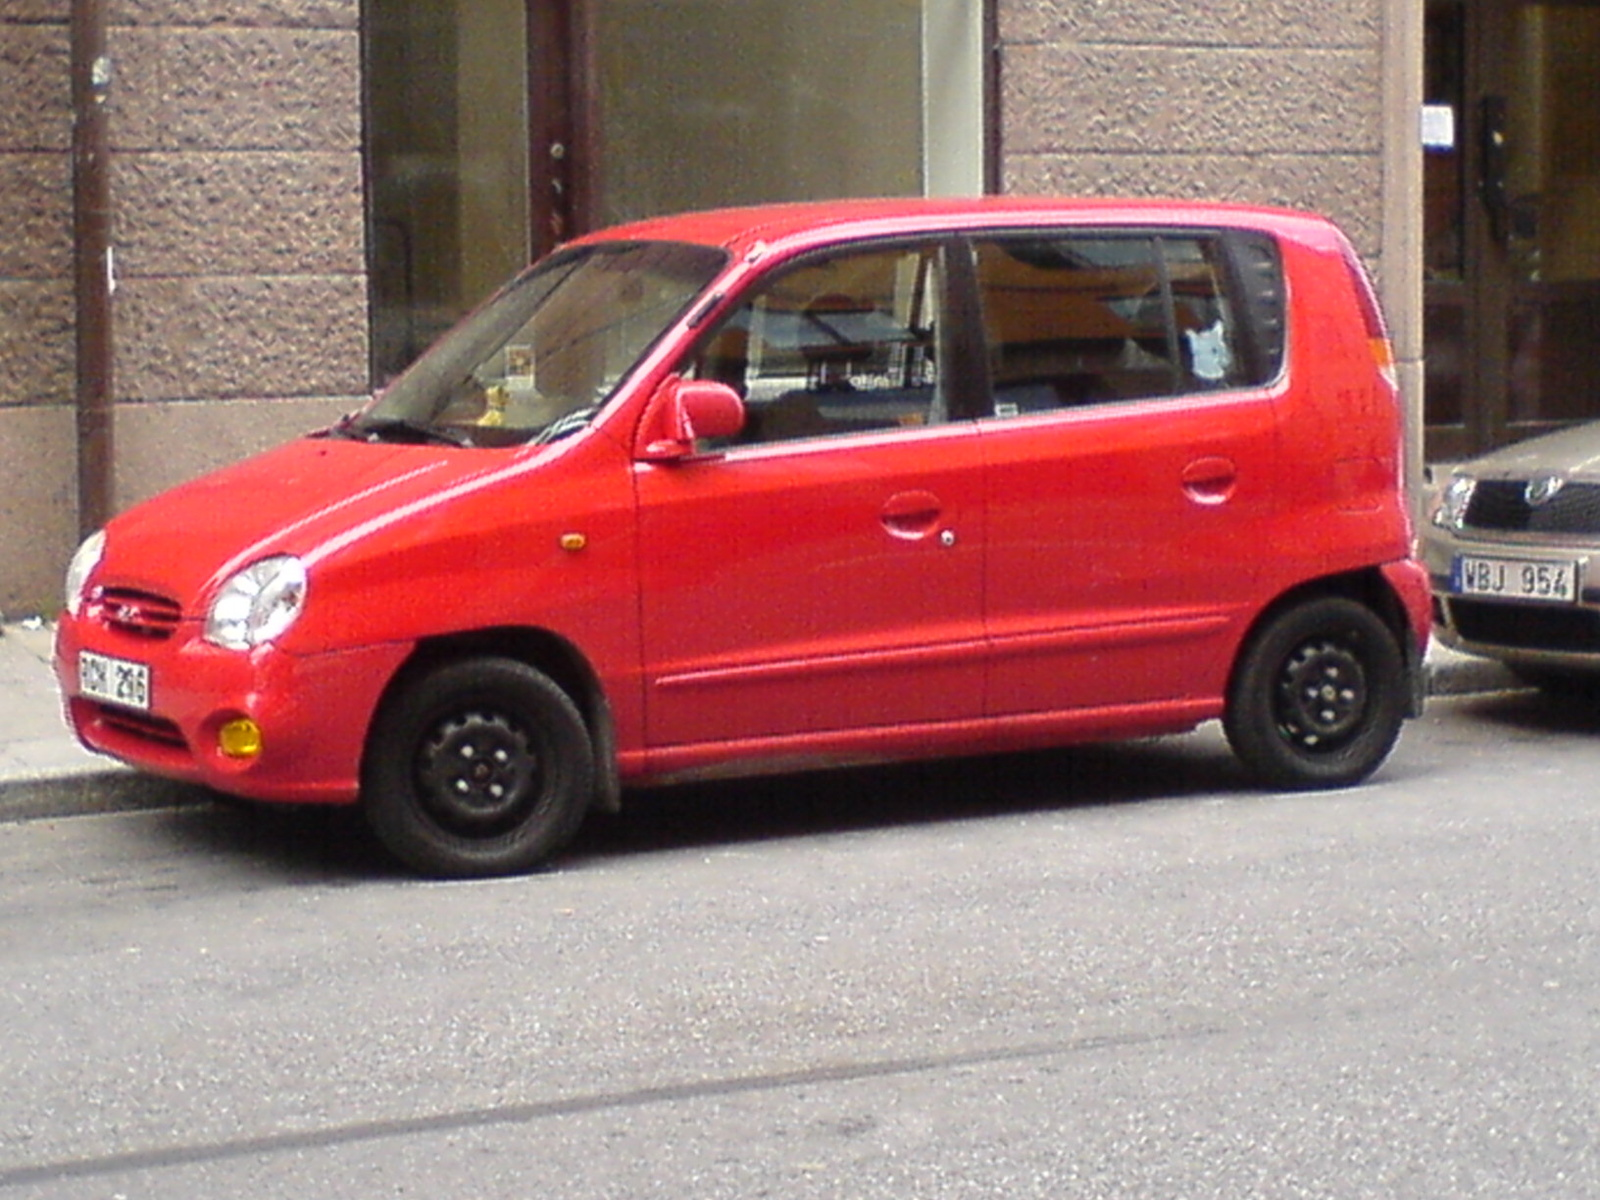 2002 hyundai atos prime pictures information and specs. Black Bedroom Furniture Sets. Home Design Ideas